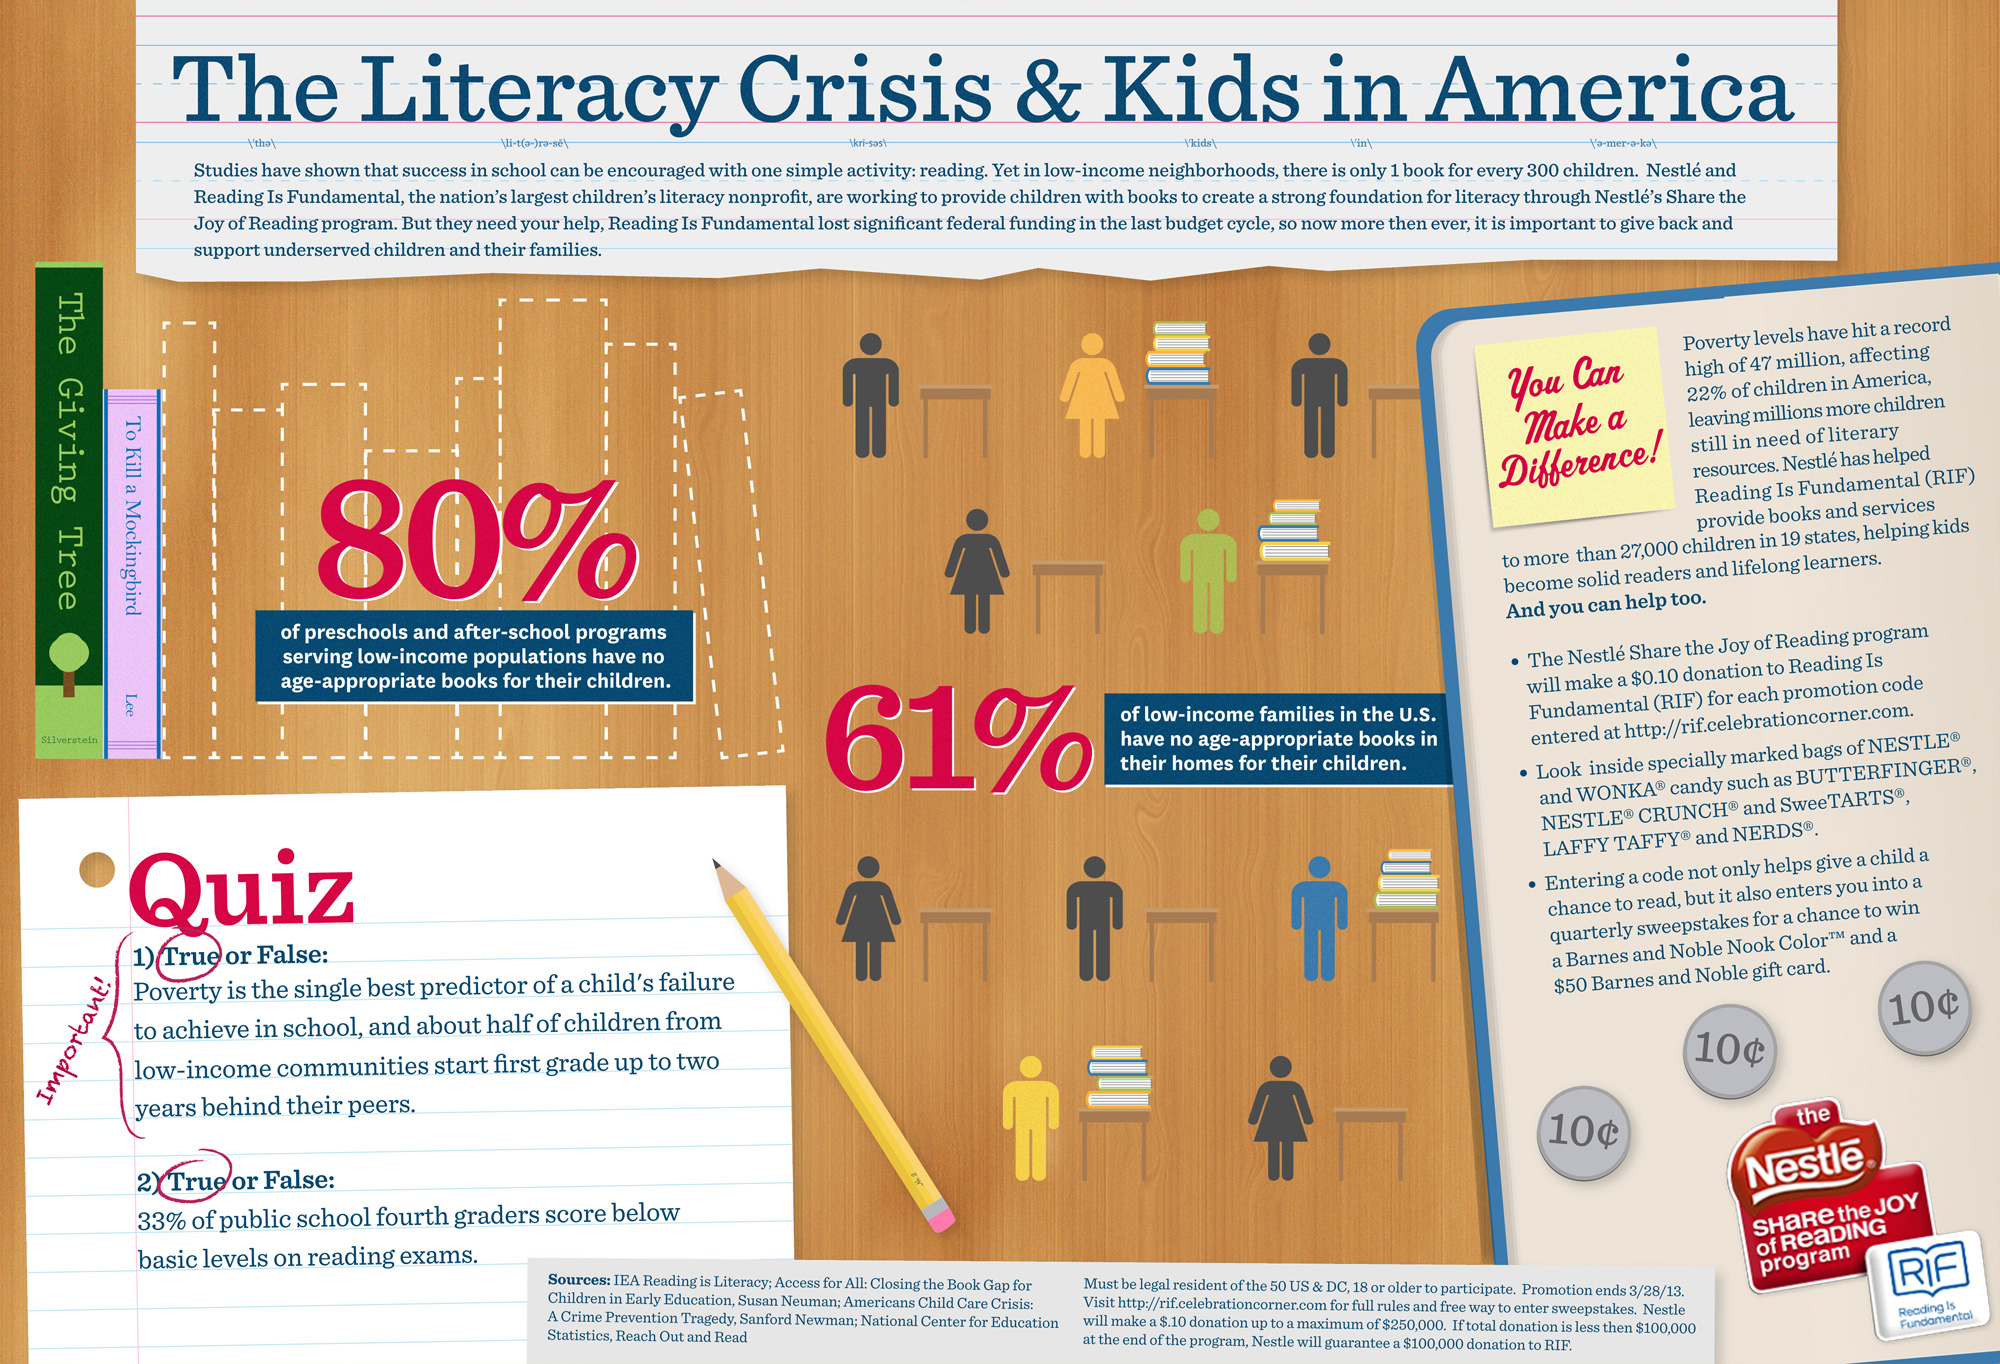 the-literacy-crisis--kids-in-america_50bfd2439f0af